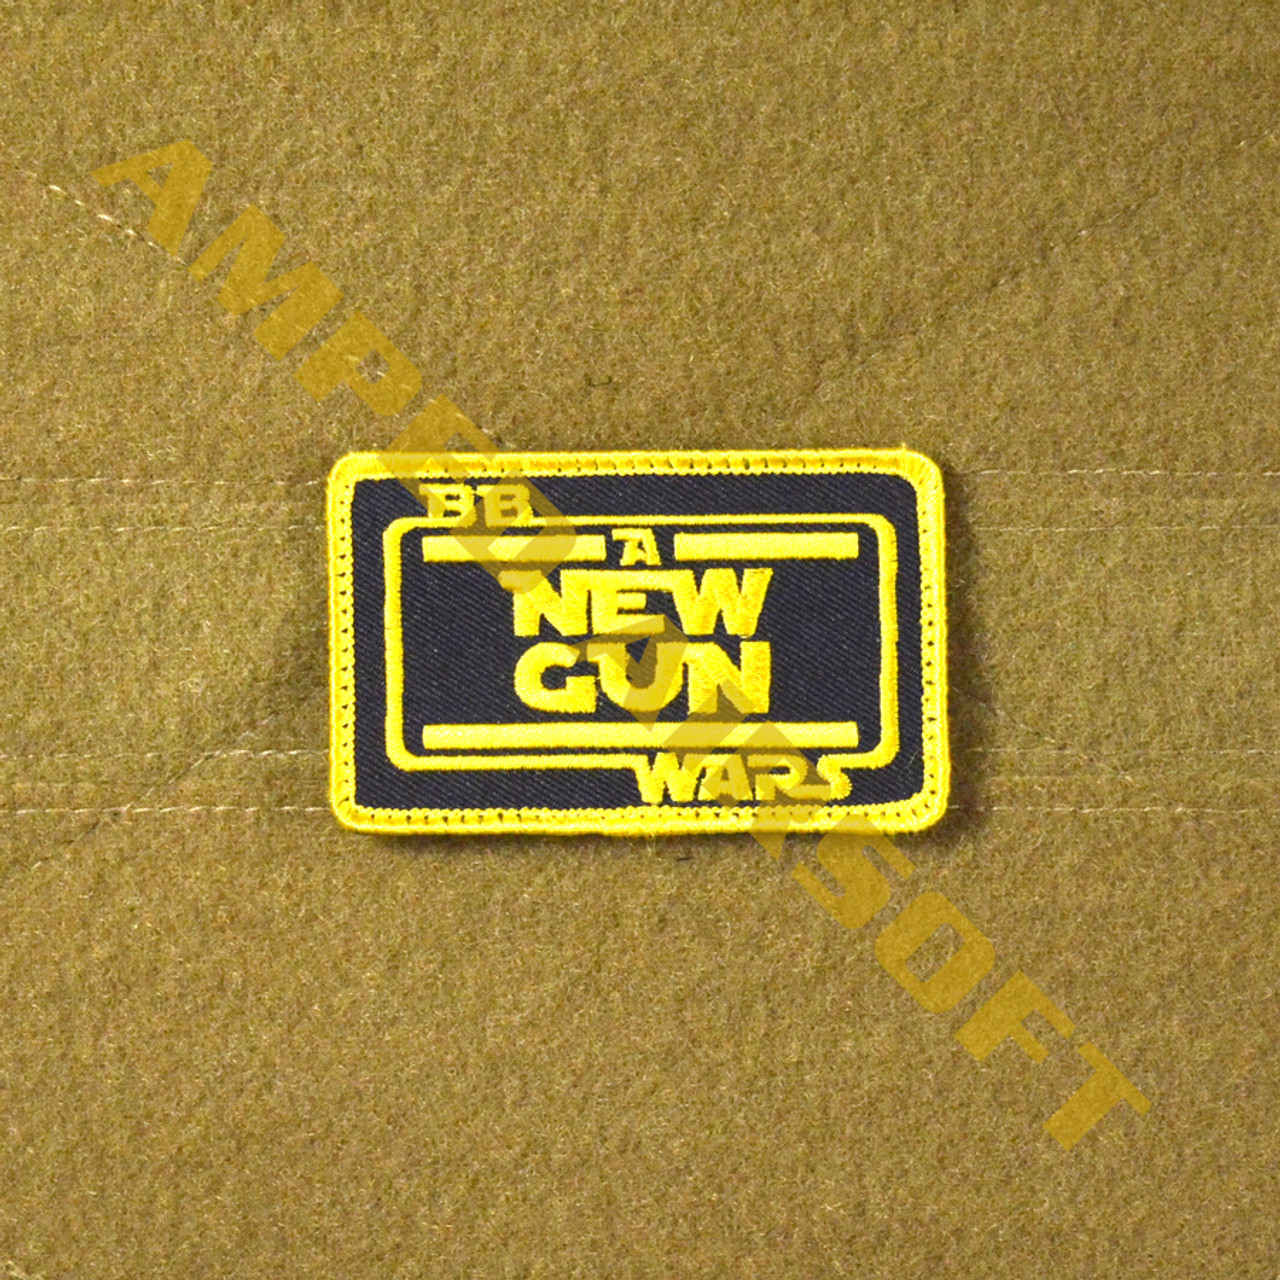 Amped Custom - BB Wars Patch - A New Gun (Full Color)